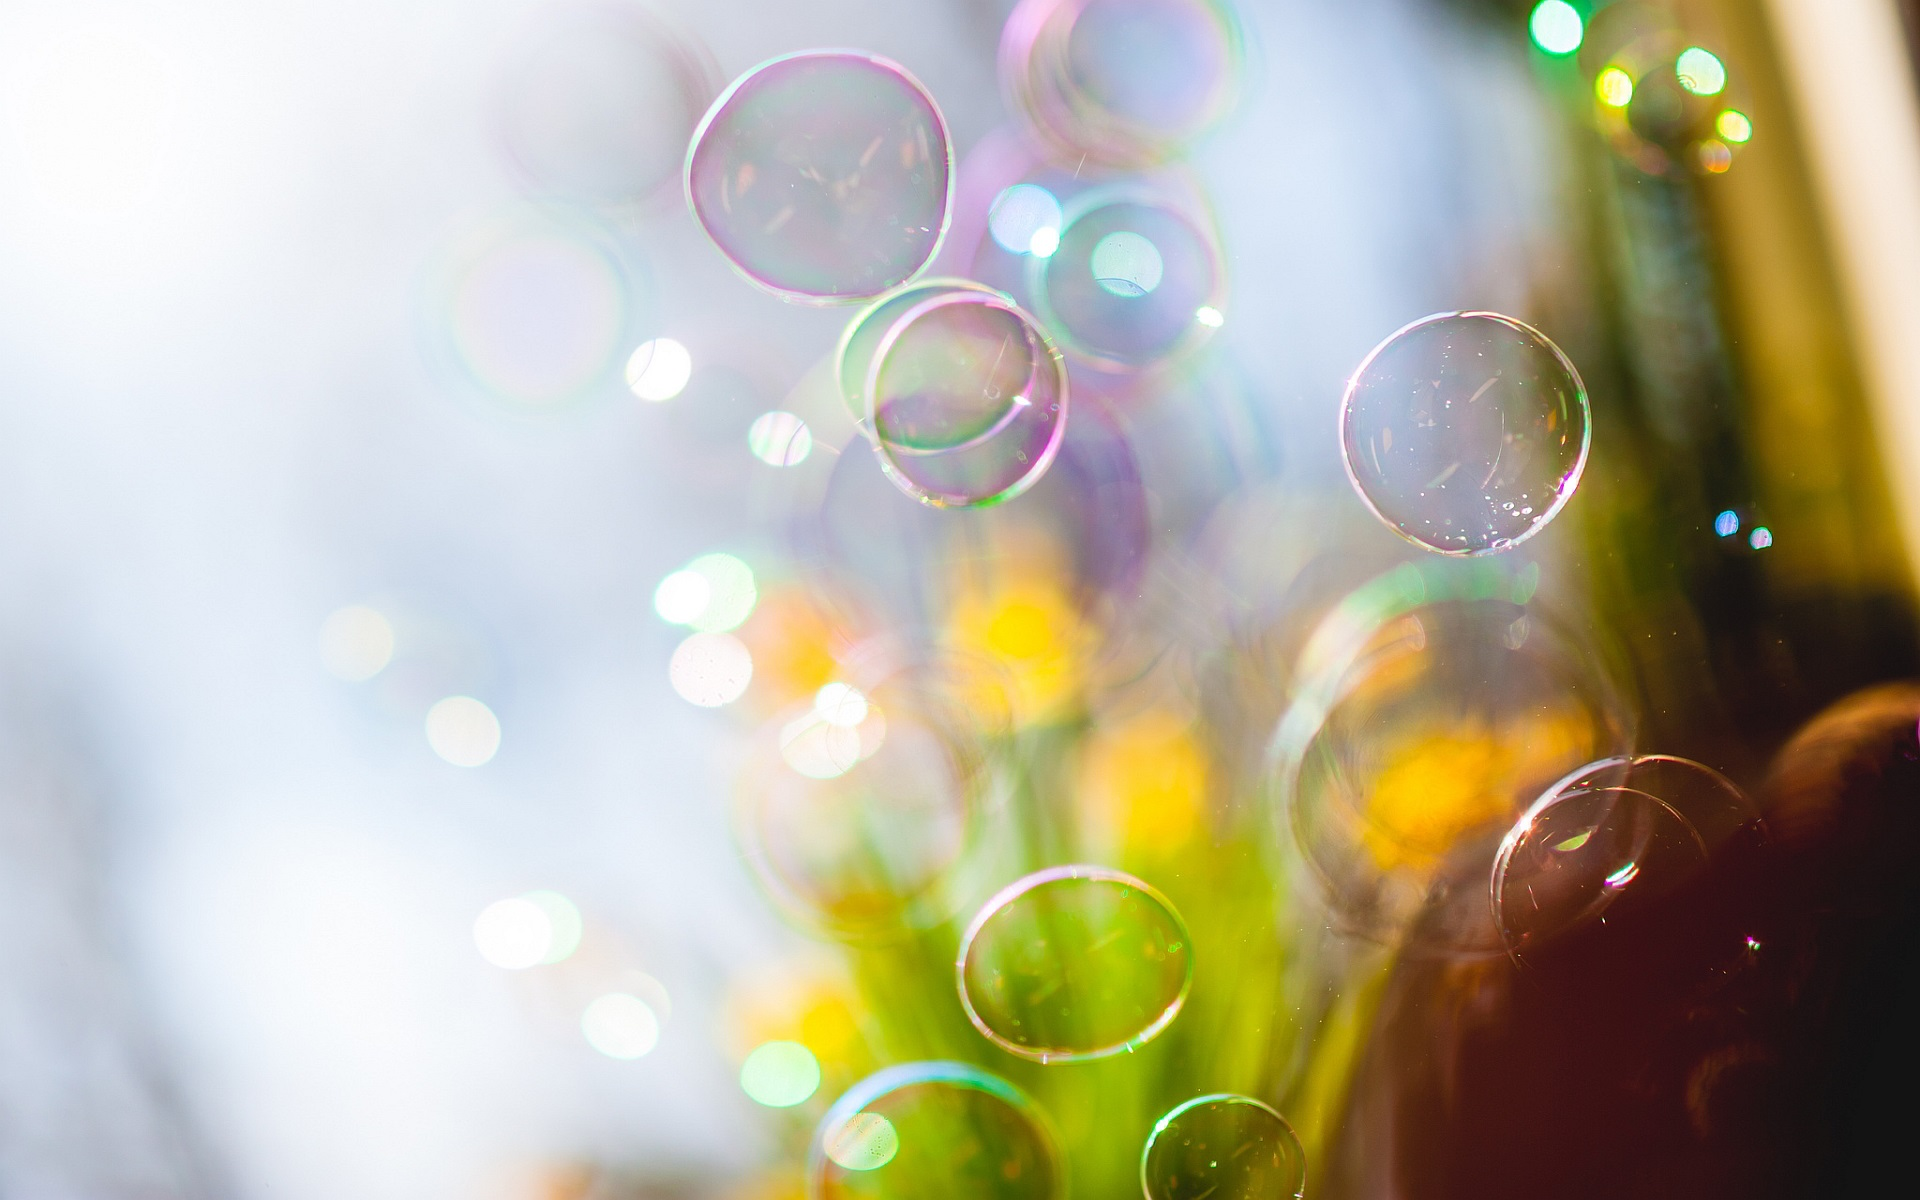 Wallpaper Soap Bubbles Flying Blurry 1920x1200 Hd Picture